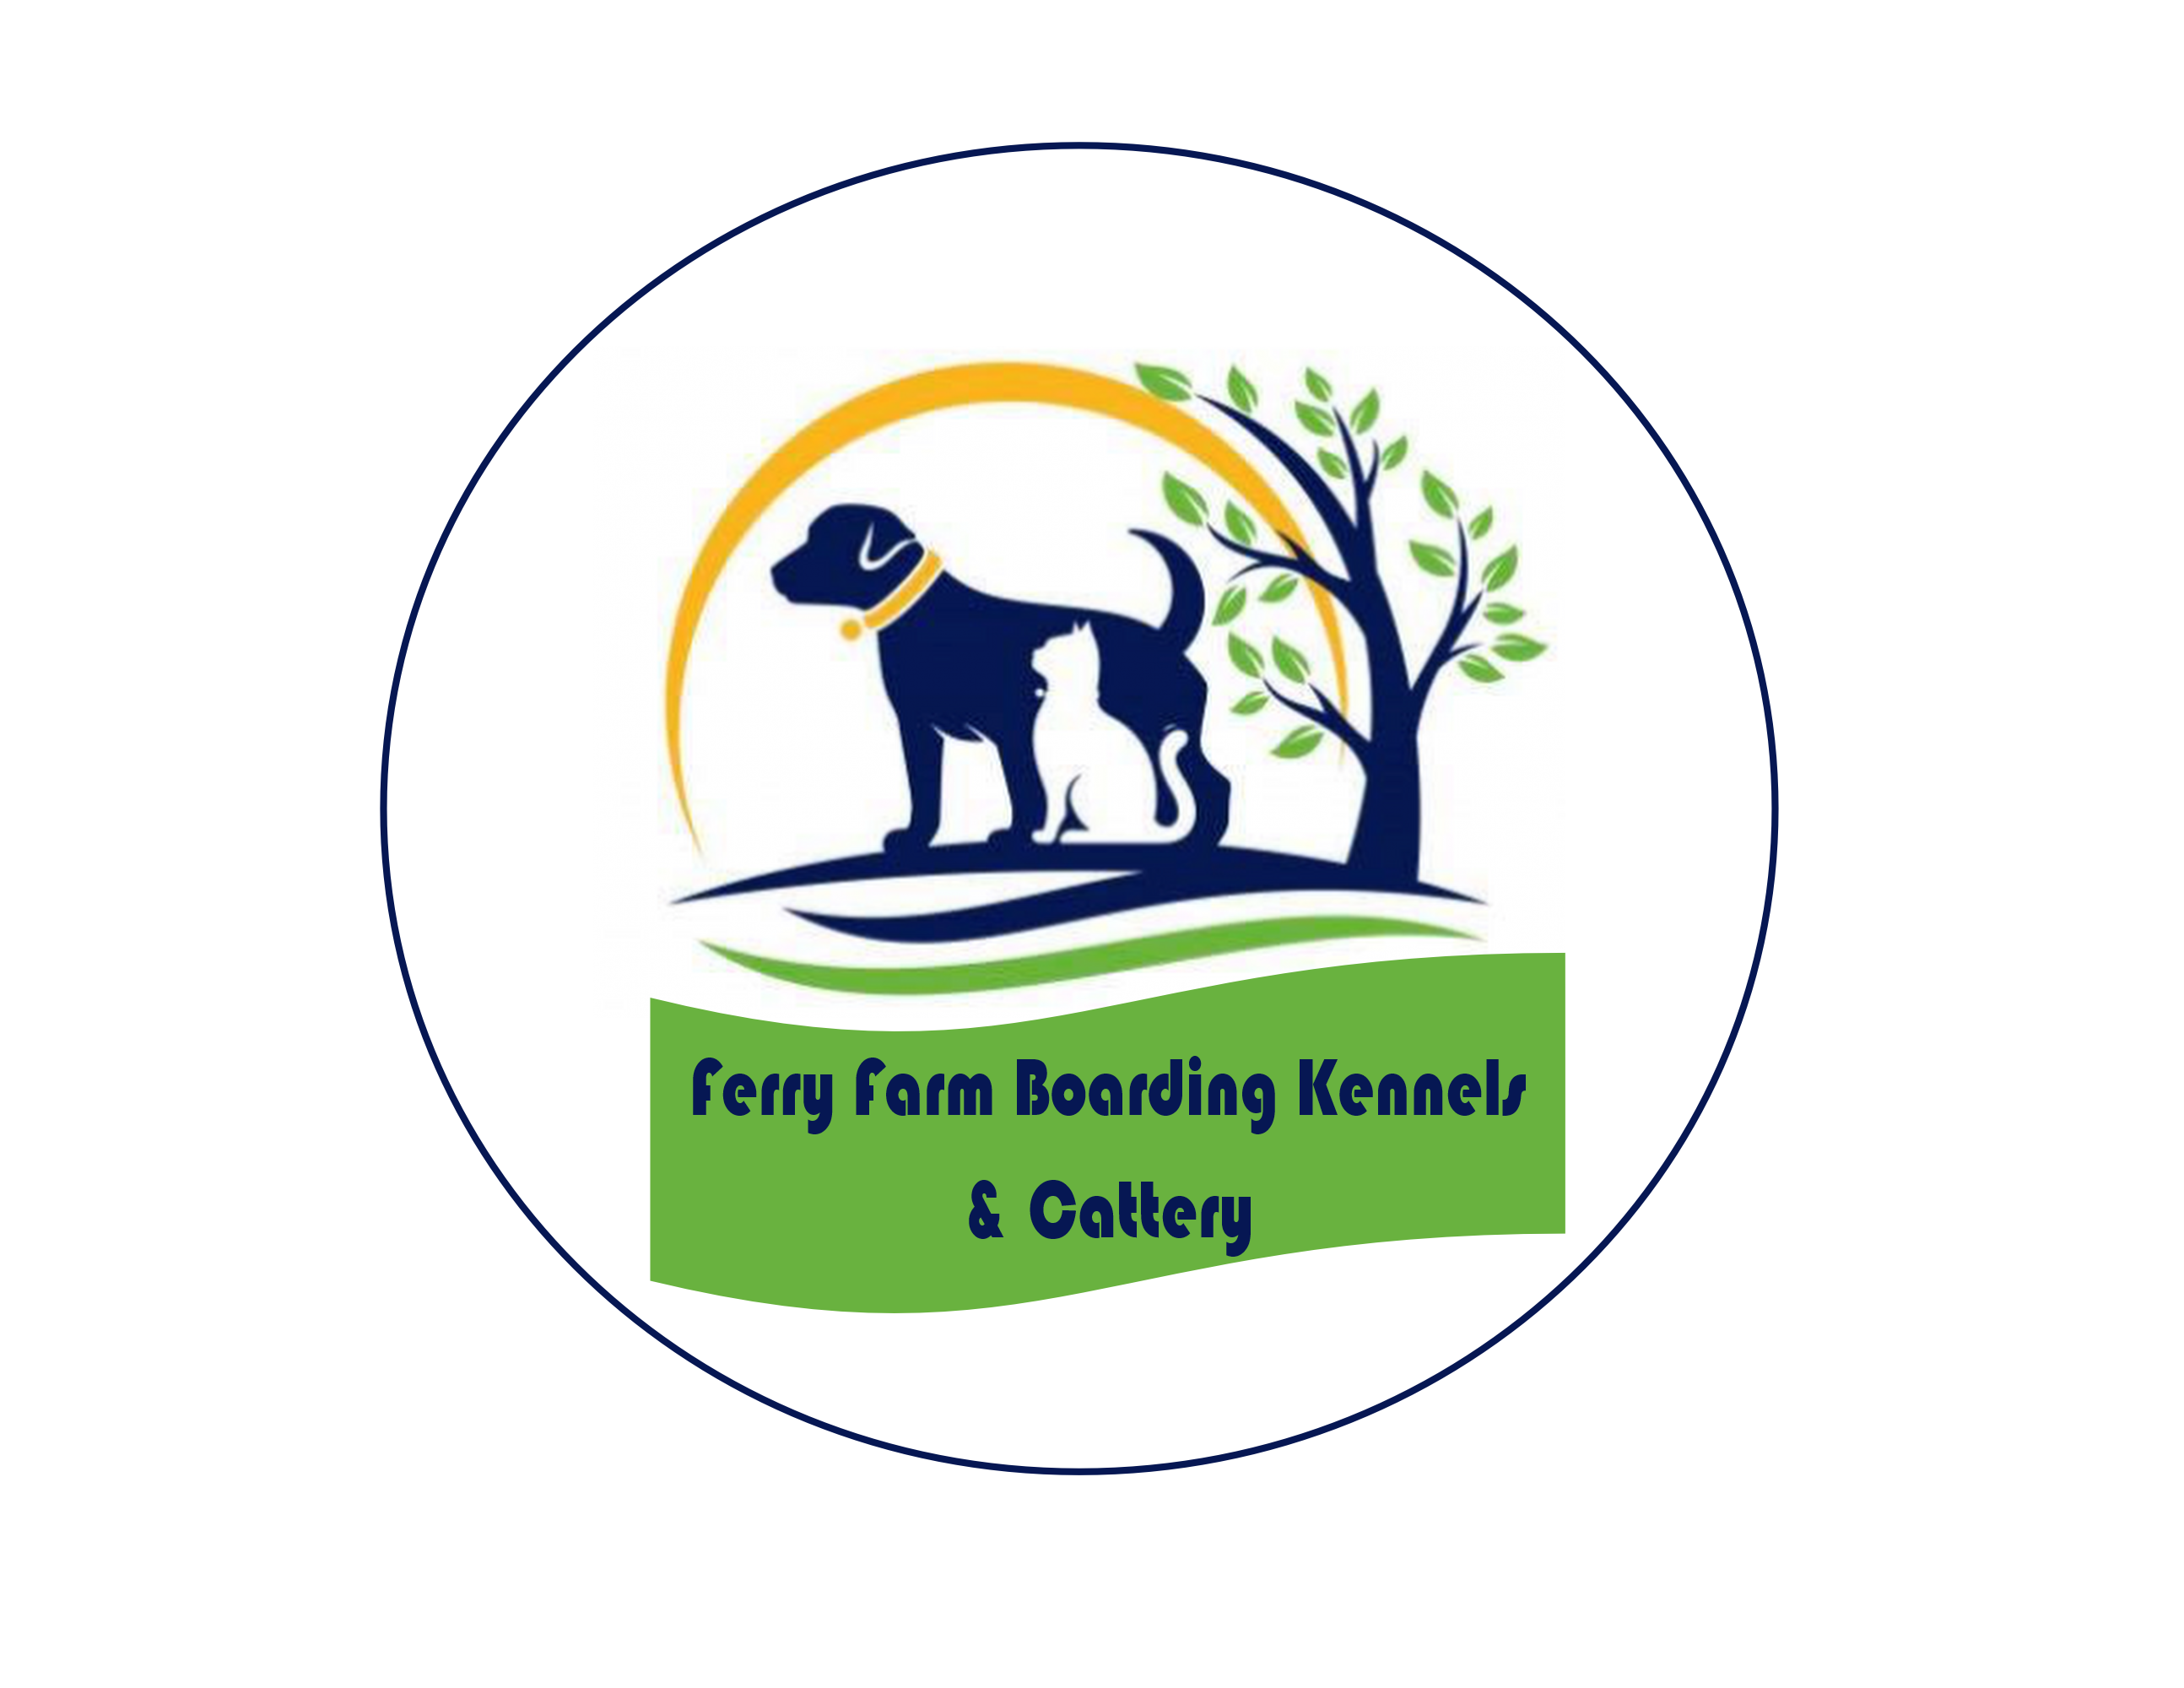 ferry farm boarding kennels